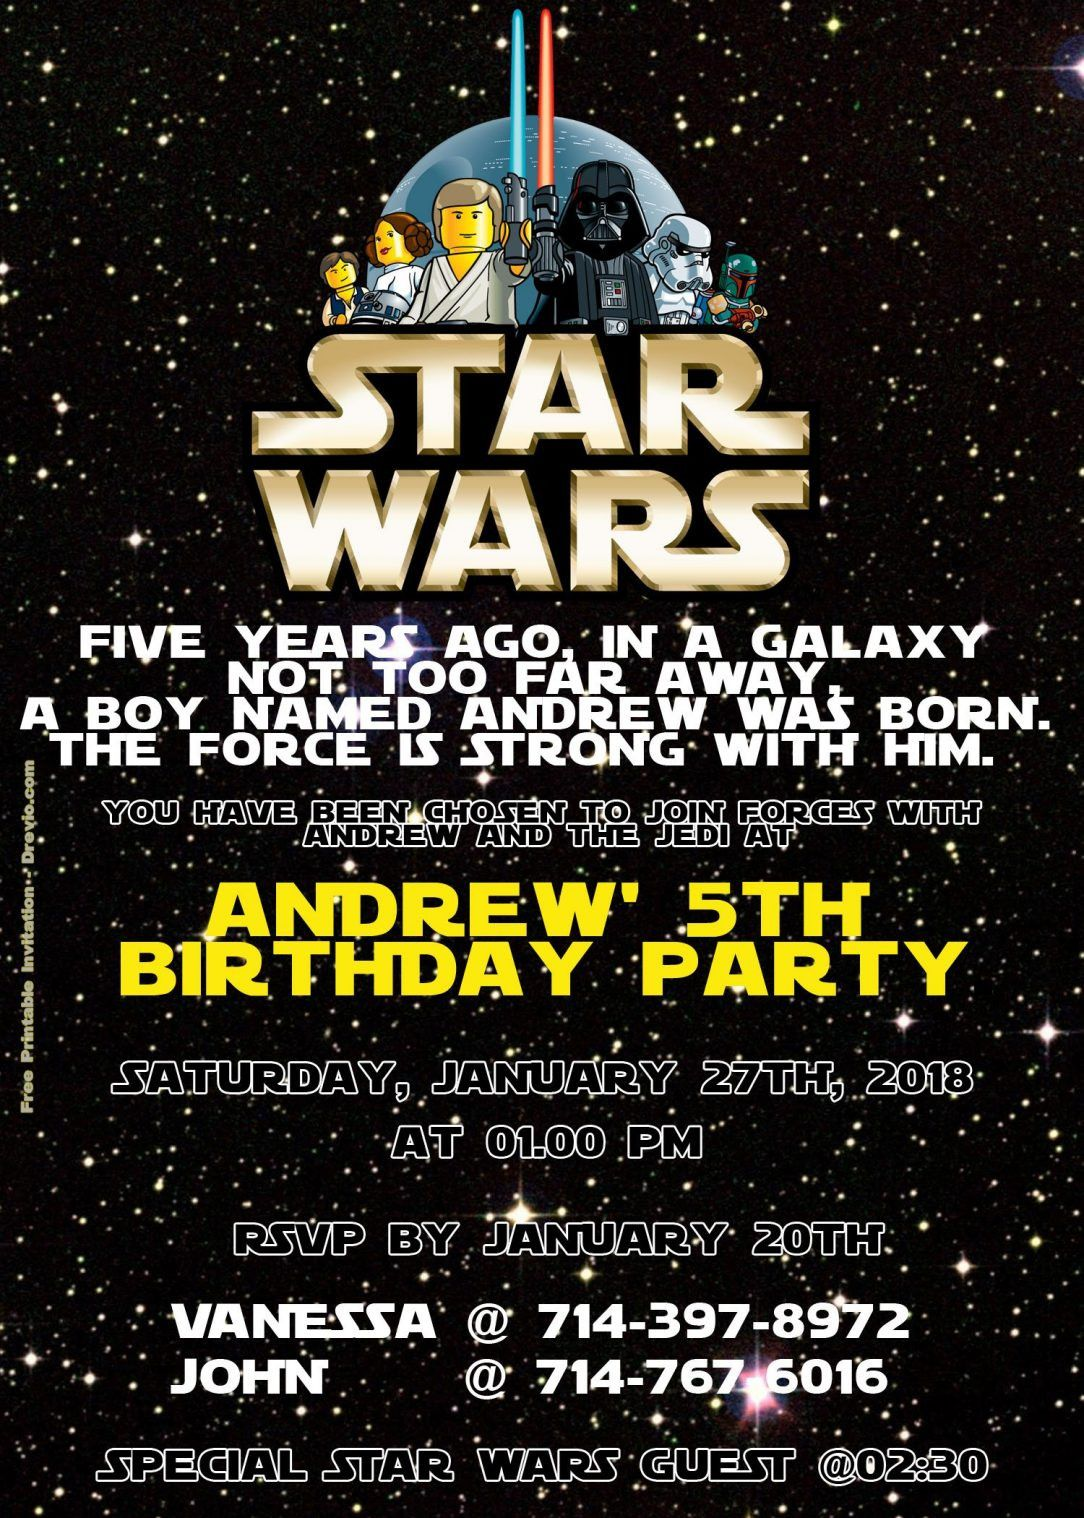 Star Wars Party Invites Template Best Of Star Wars Birthday Party